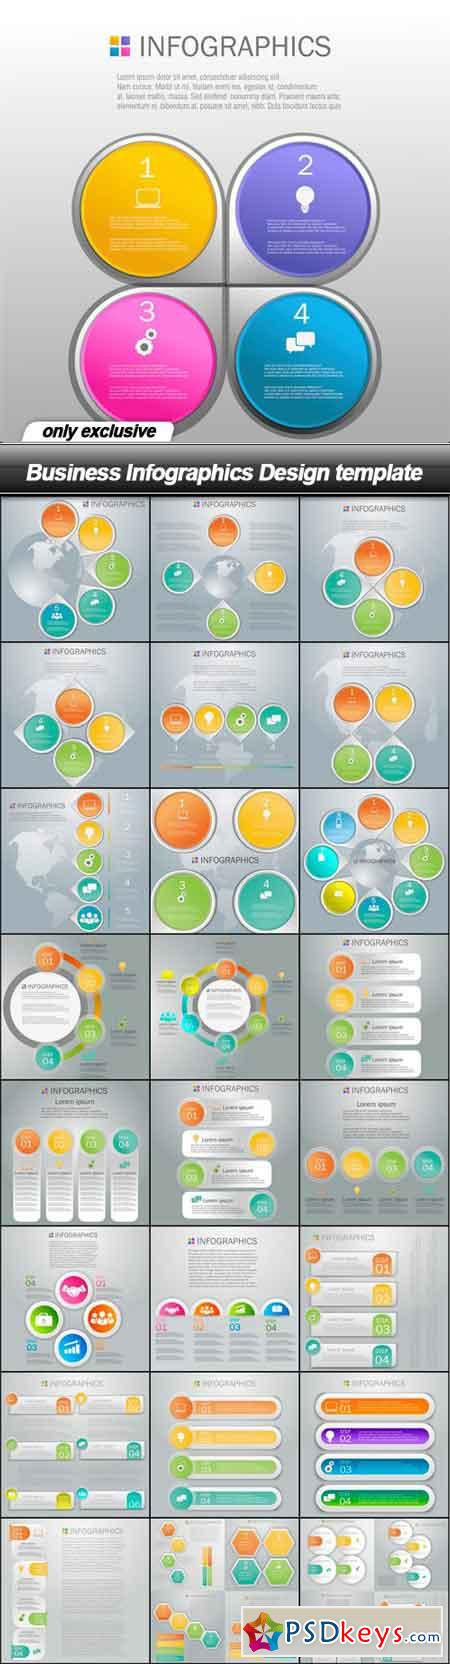 Business Infographics Design template - 25 EPS